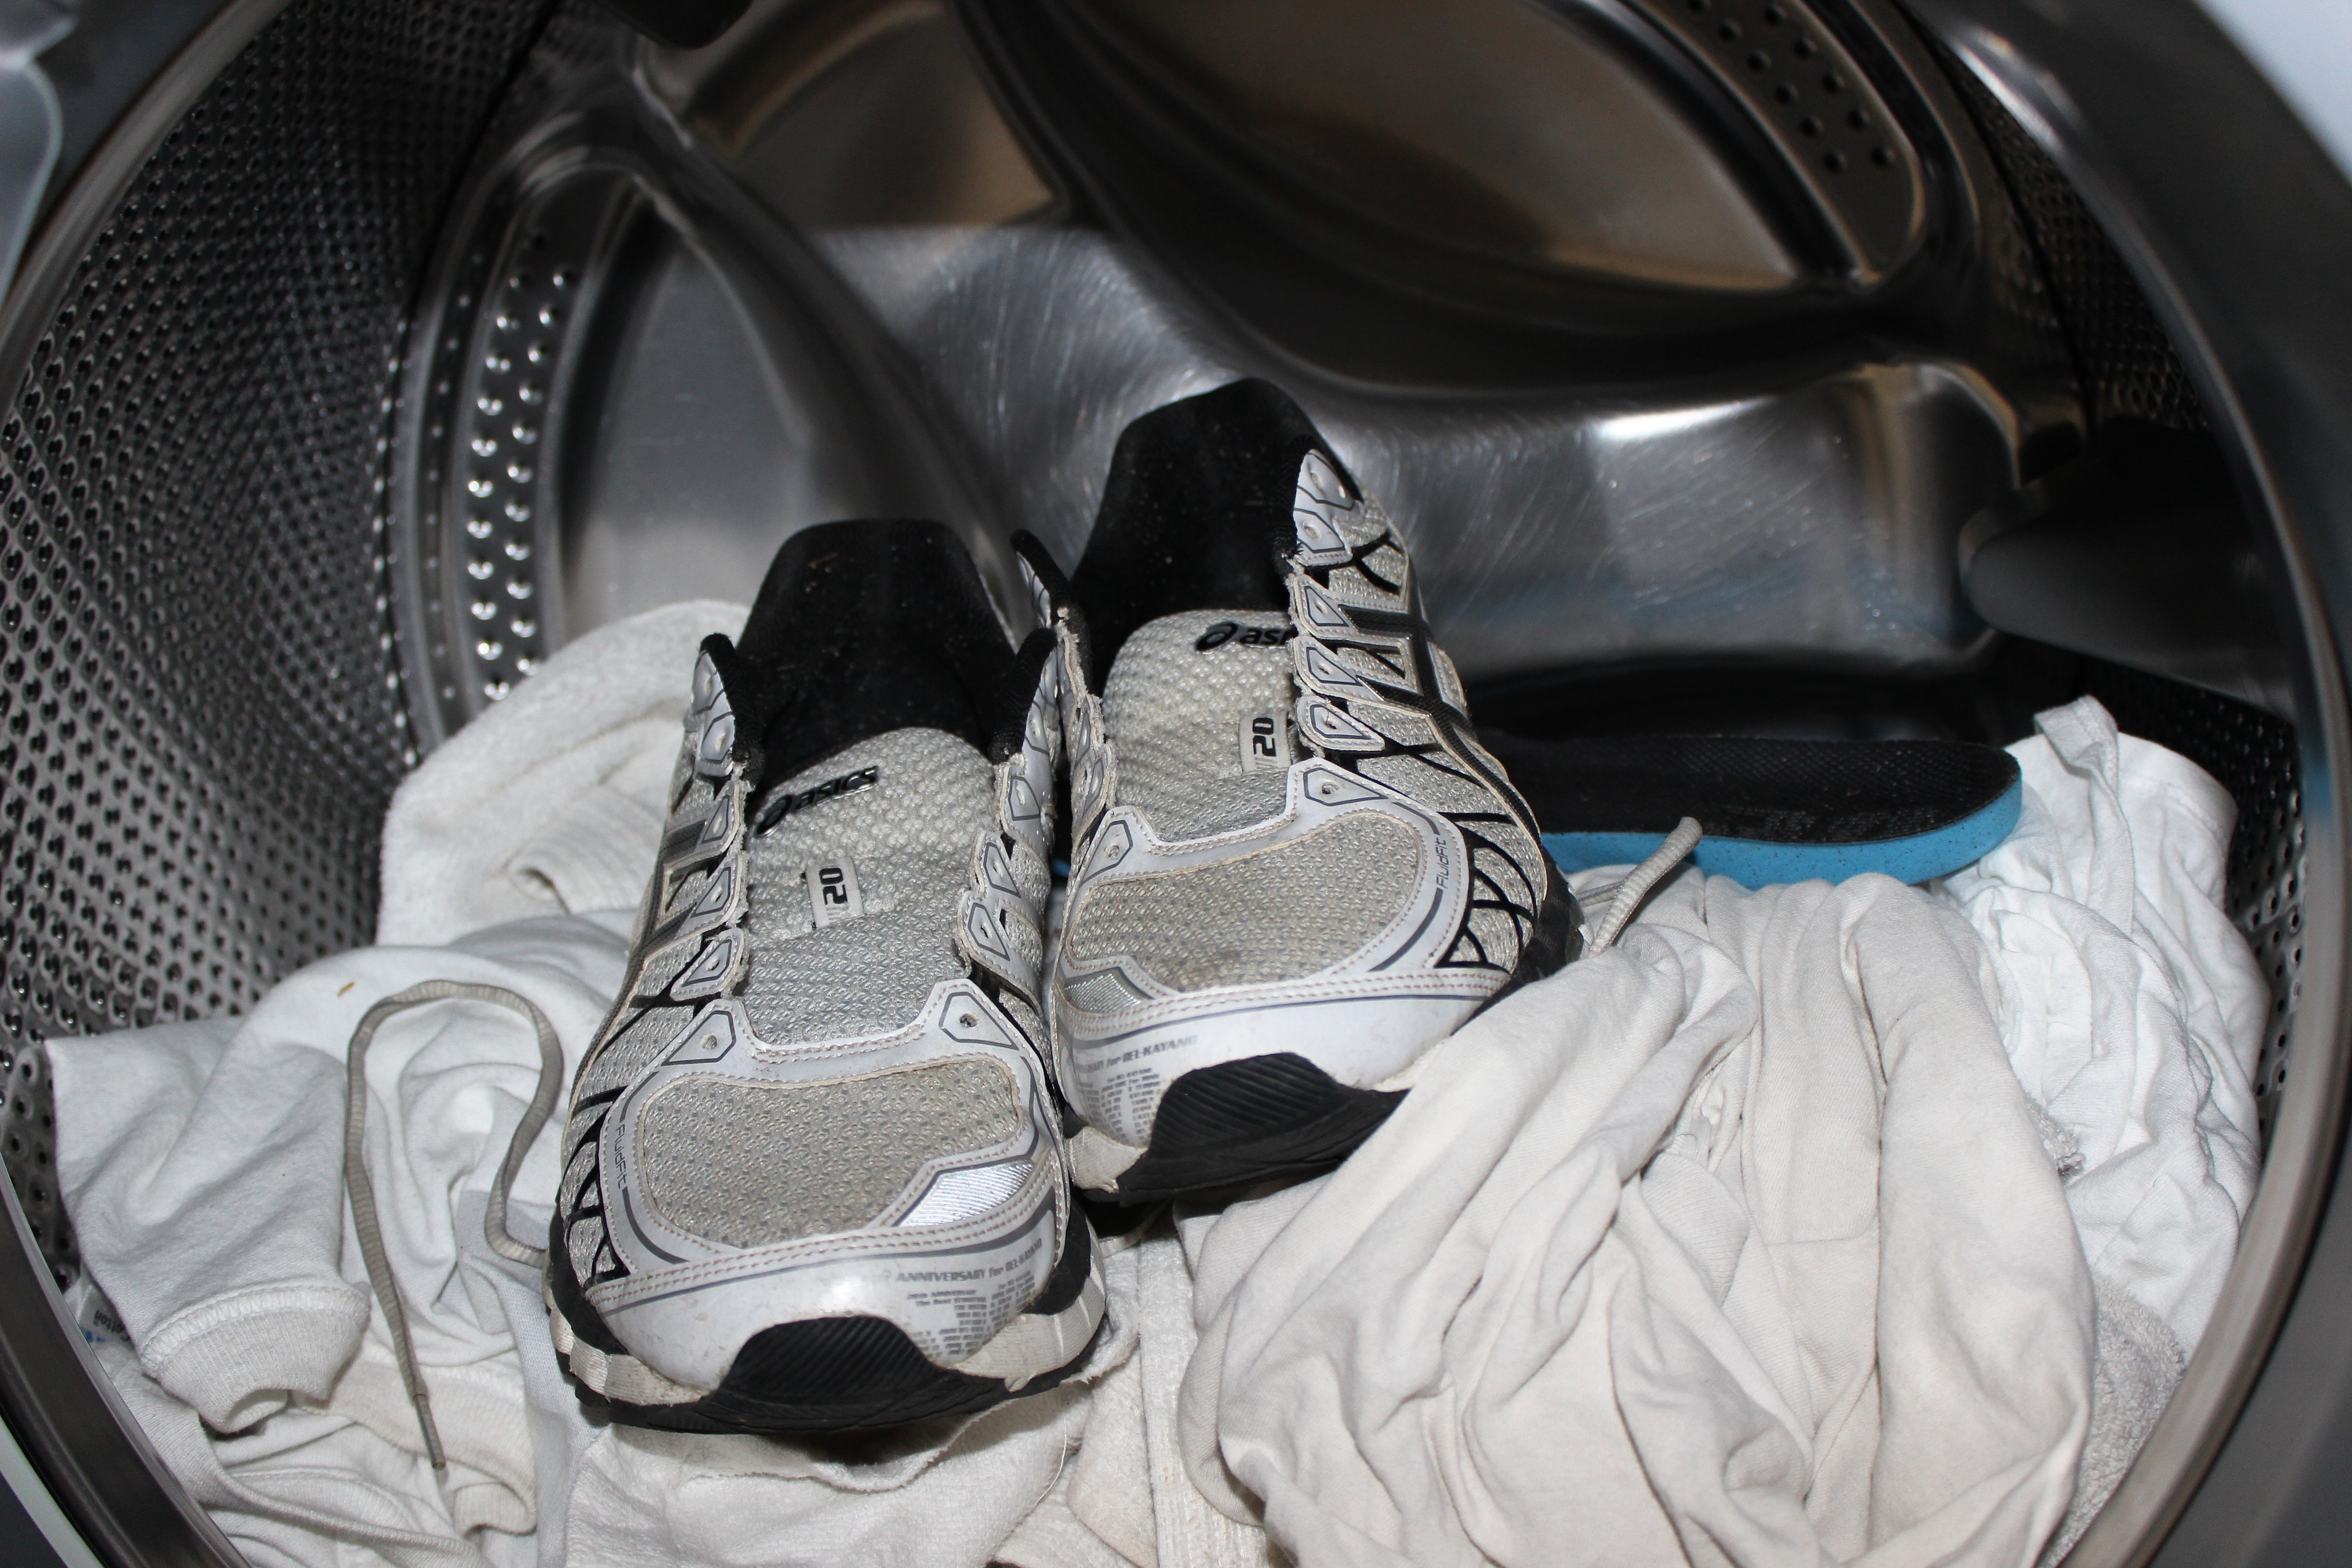 cleaning_ranning_shoes_1